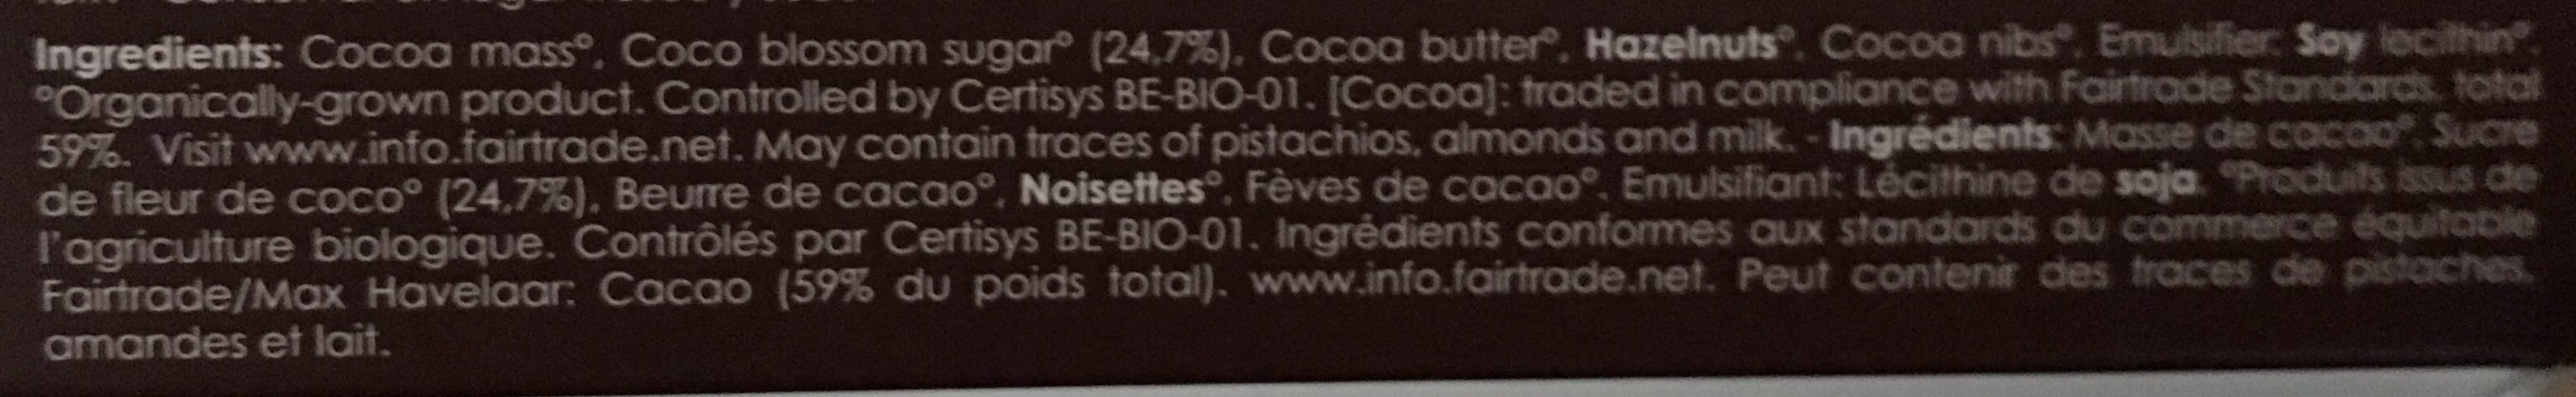 Brut de Noir 82% - Ingredients - fr